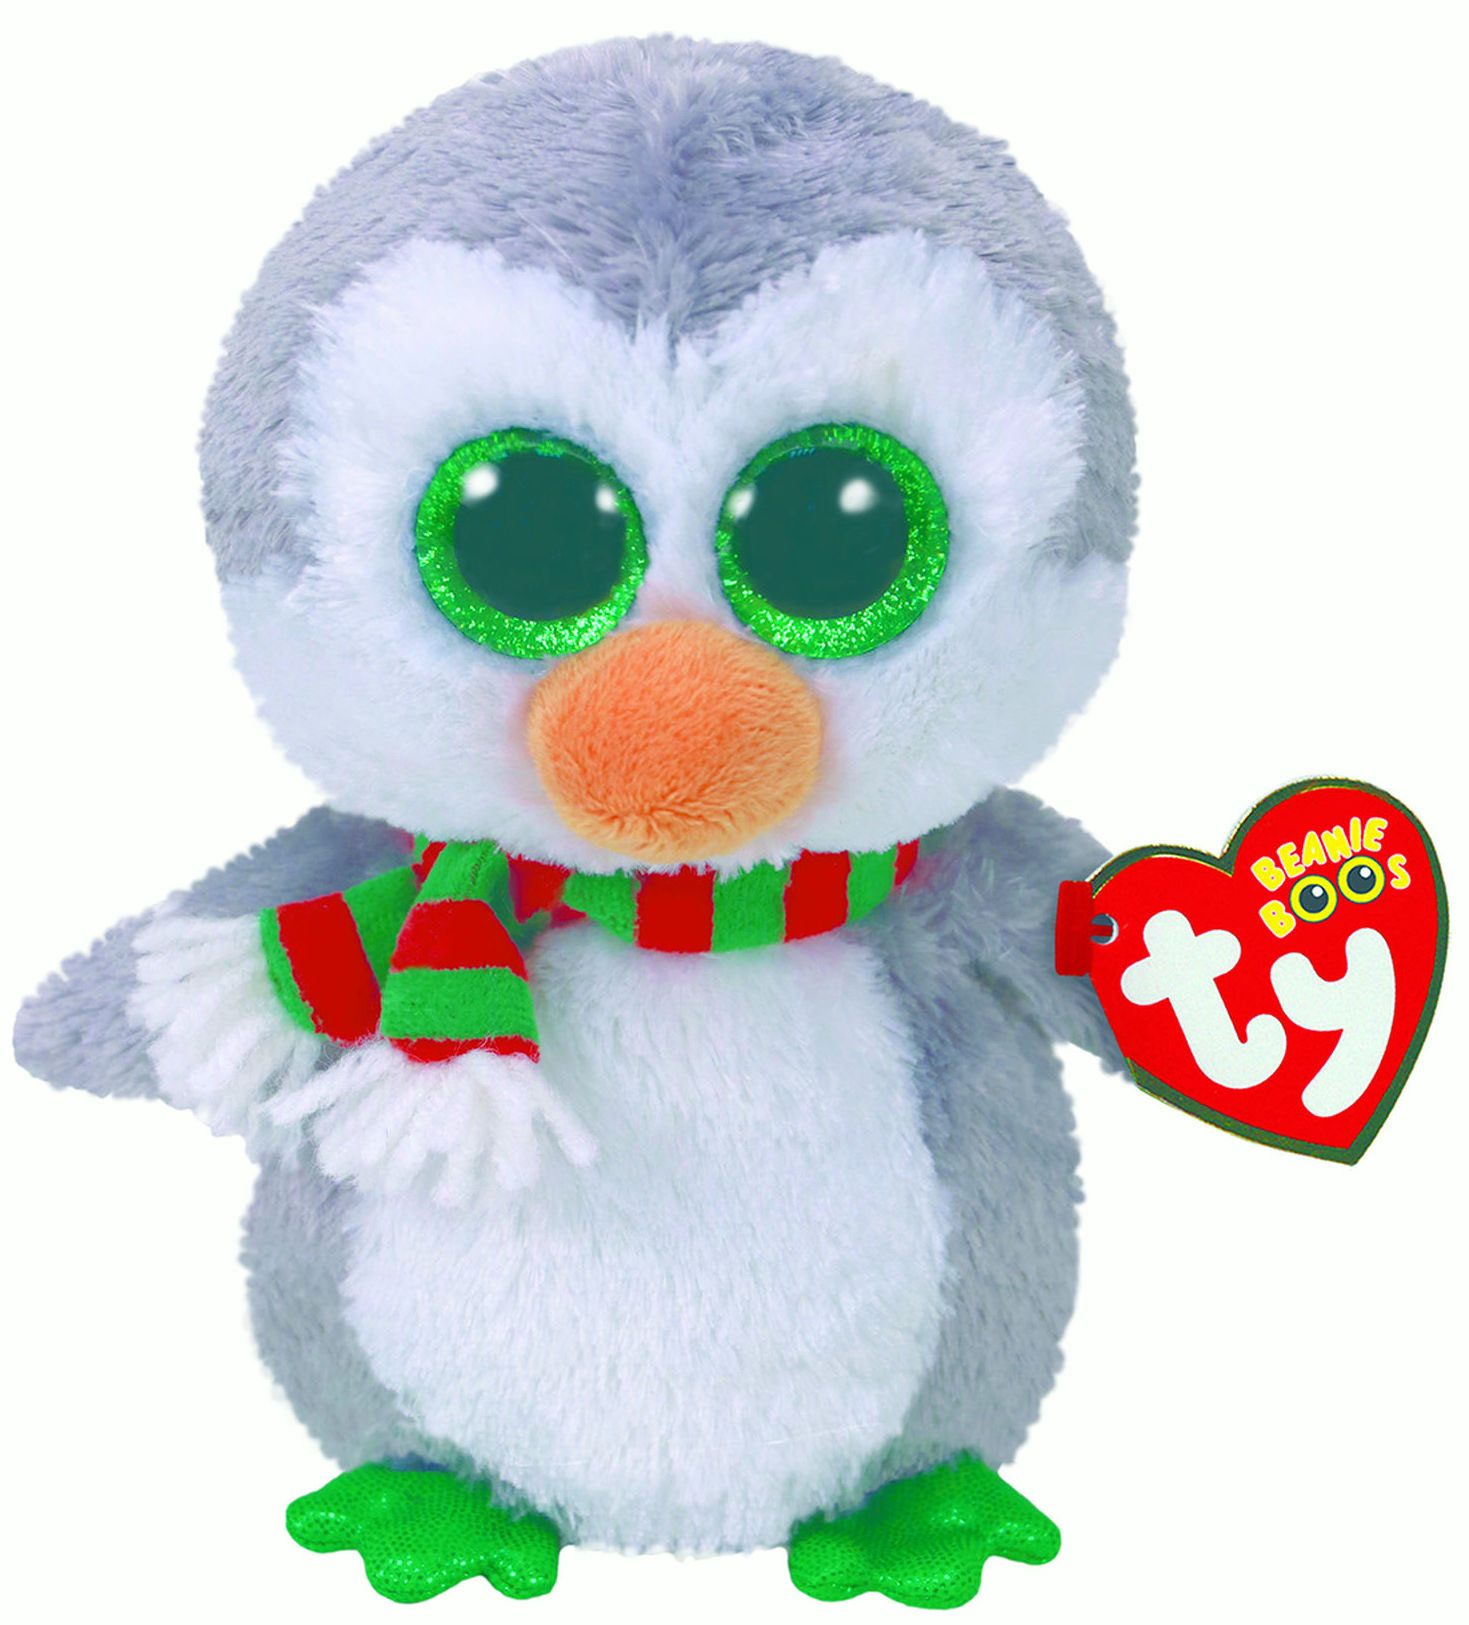 eb2666e70d0 New Claire s Exclusives Beanie Boos  Chilly